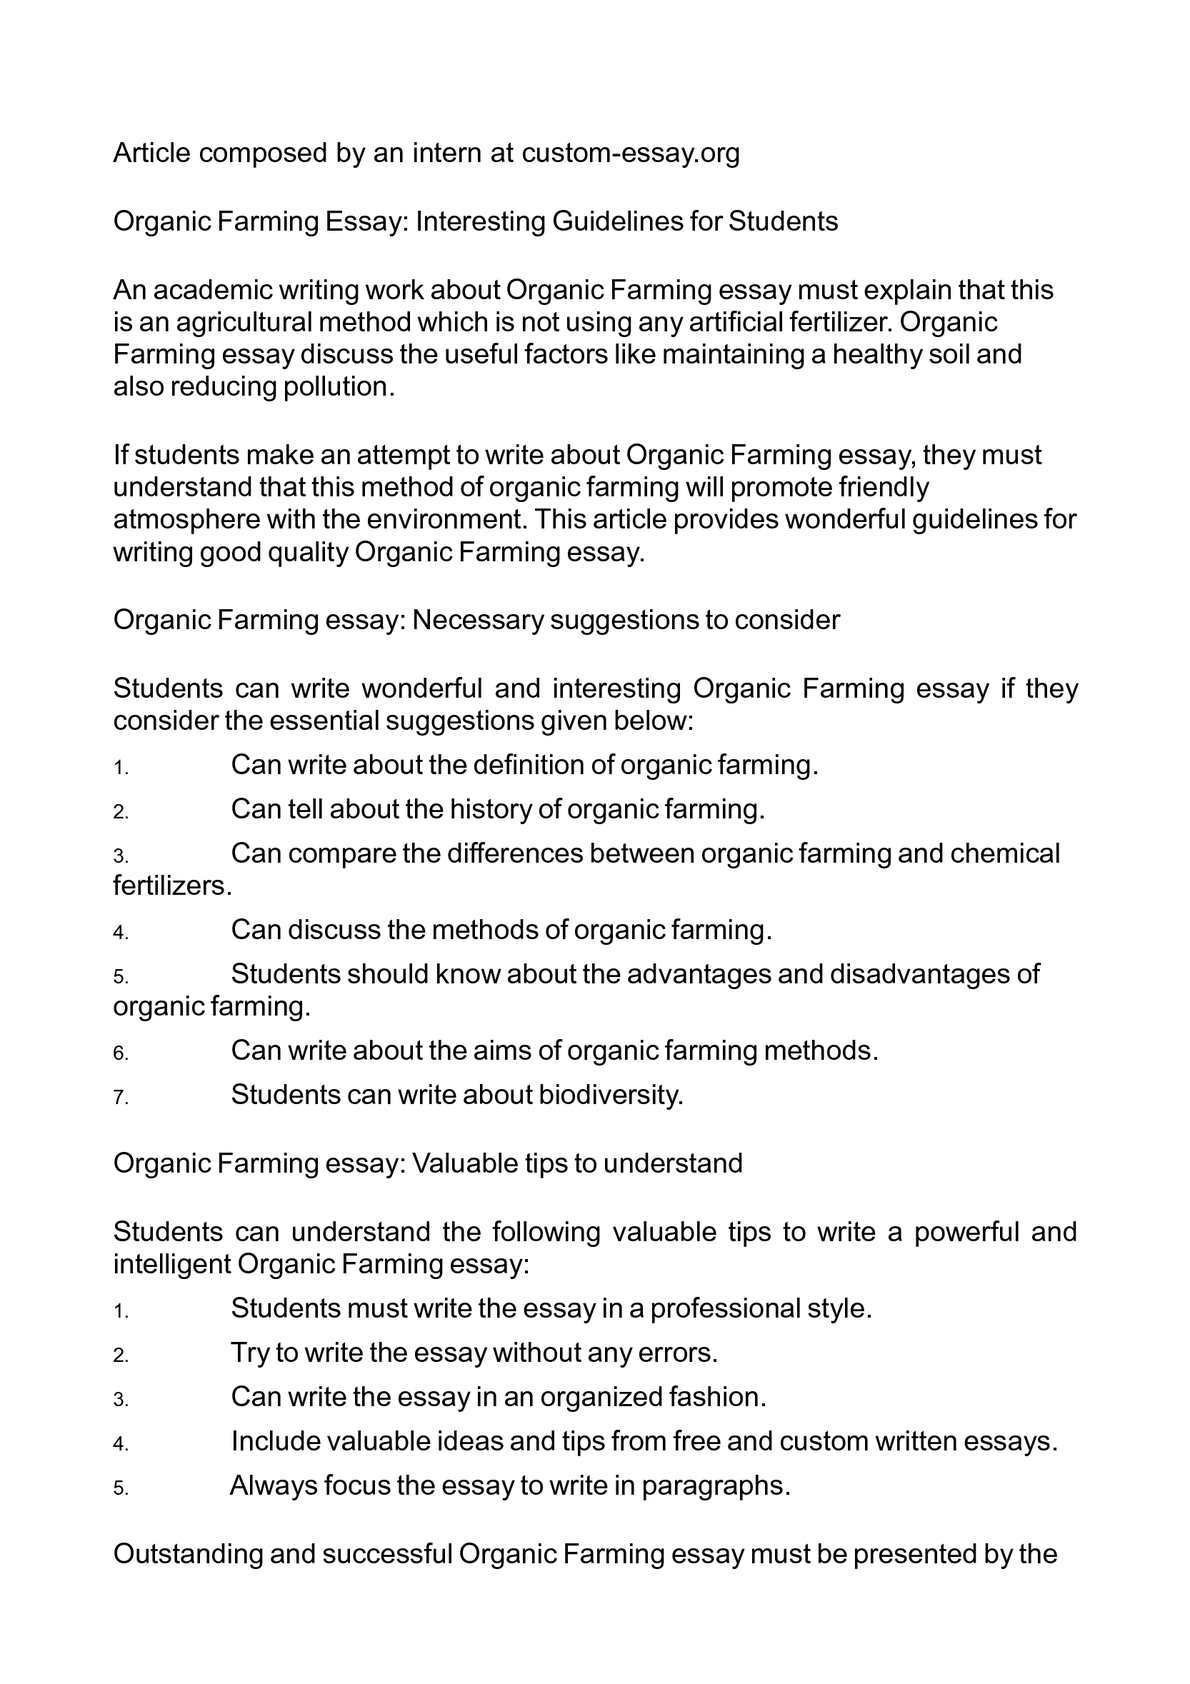 organic farming essay interesting guidelines for students